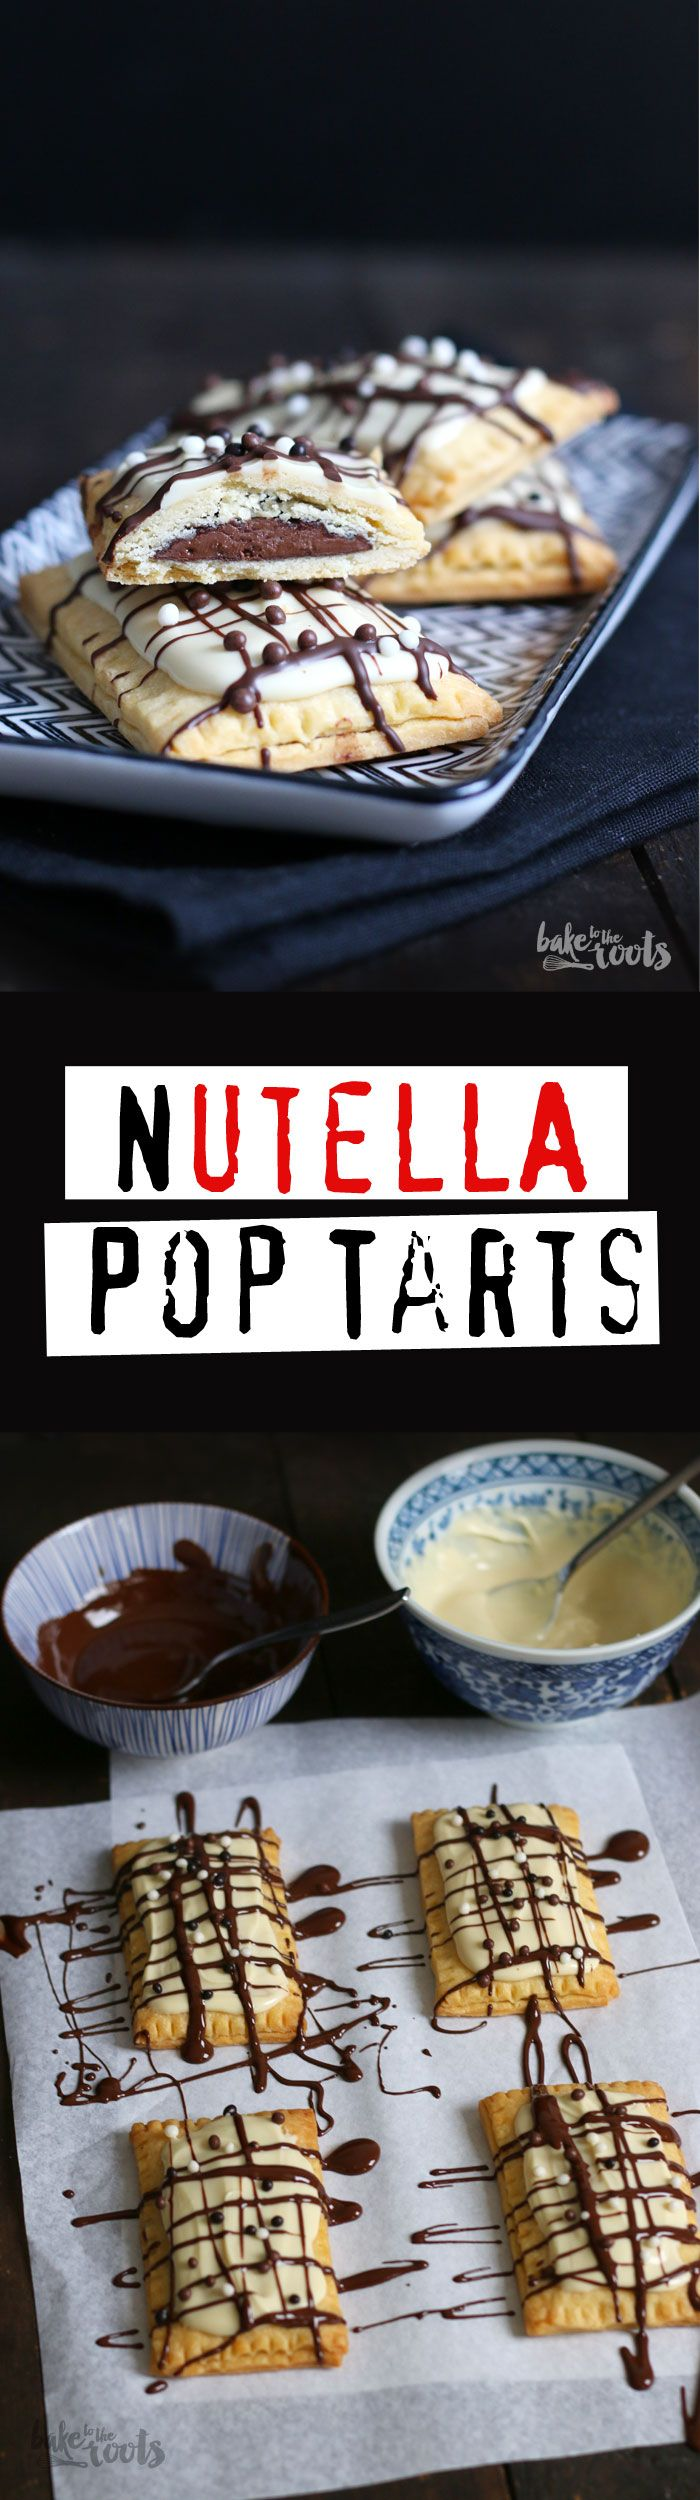 Pop Tarts mit Nutella | Bake to the roots